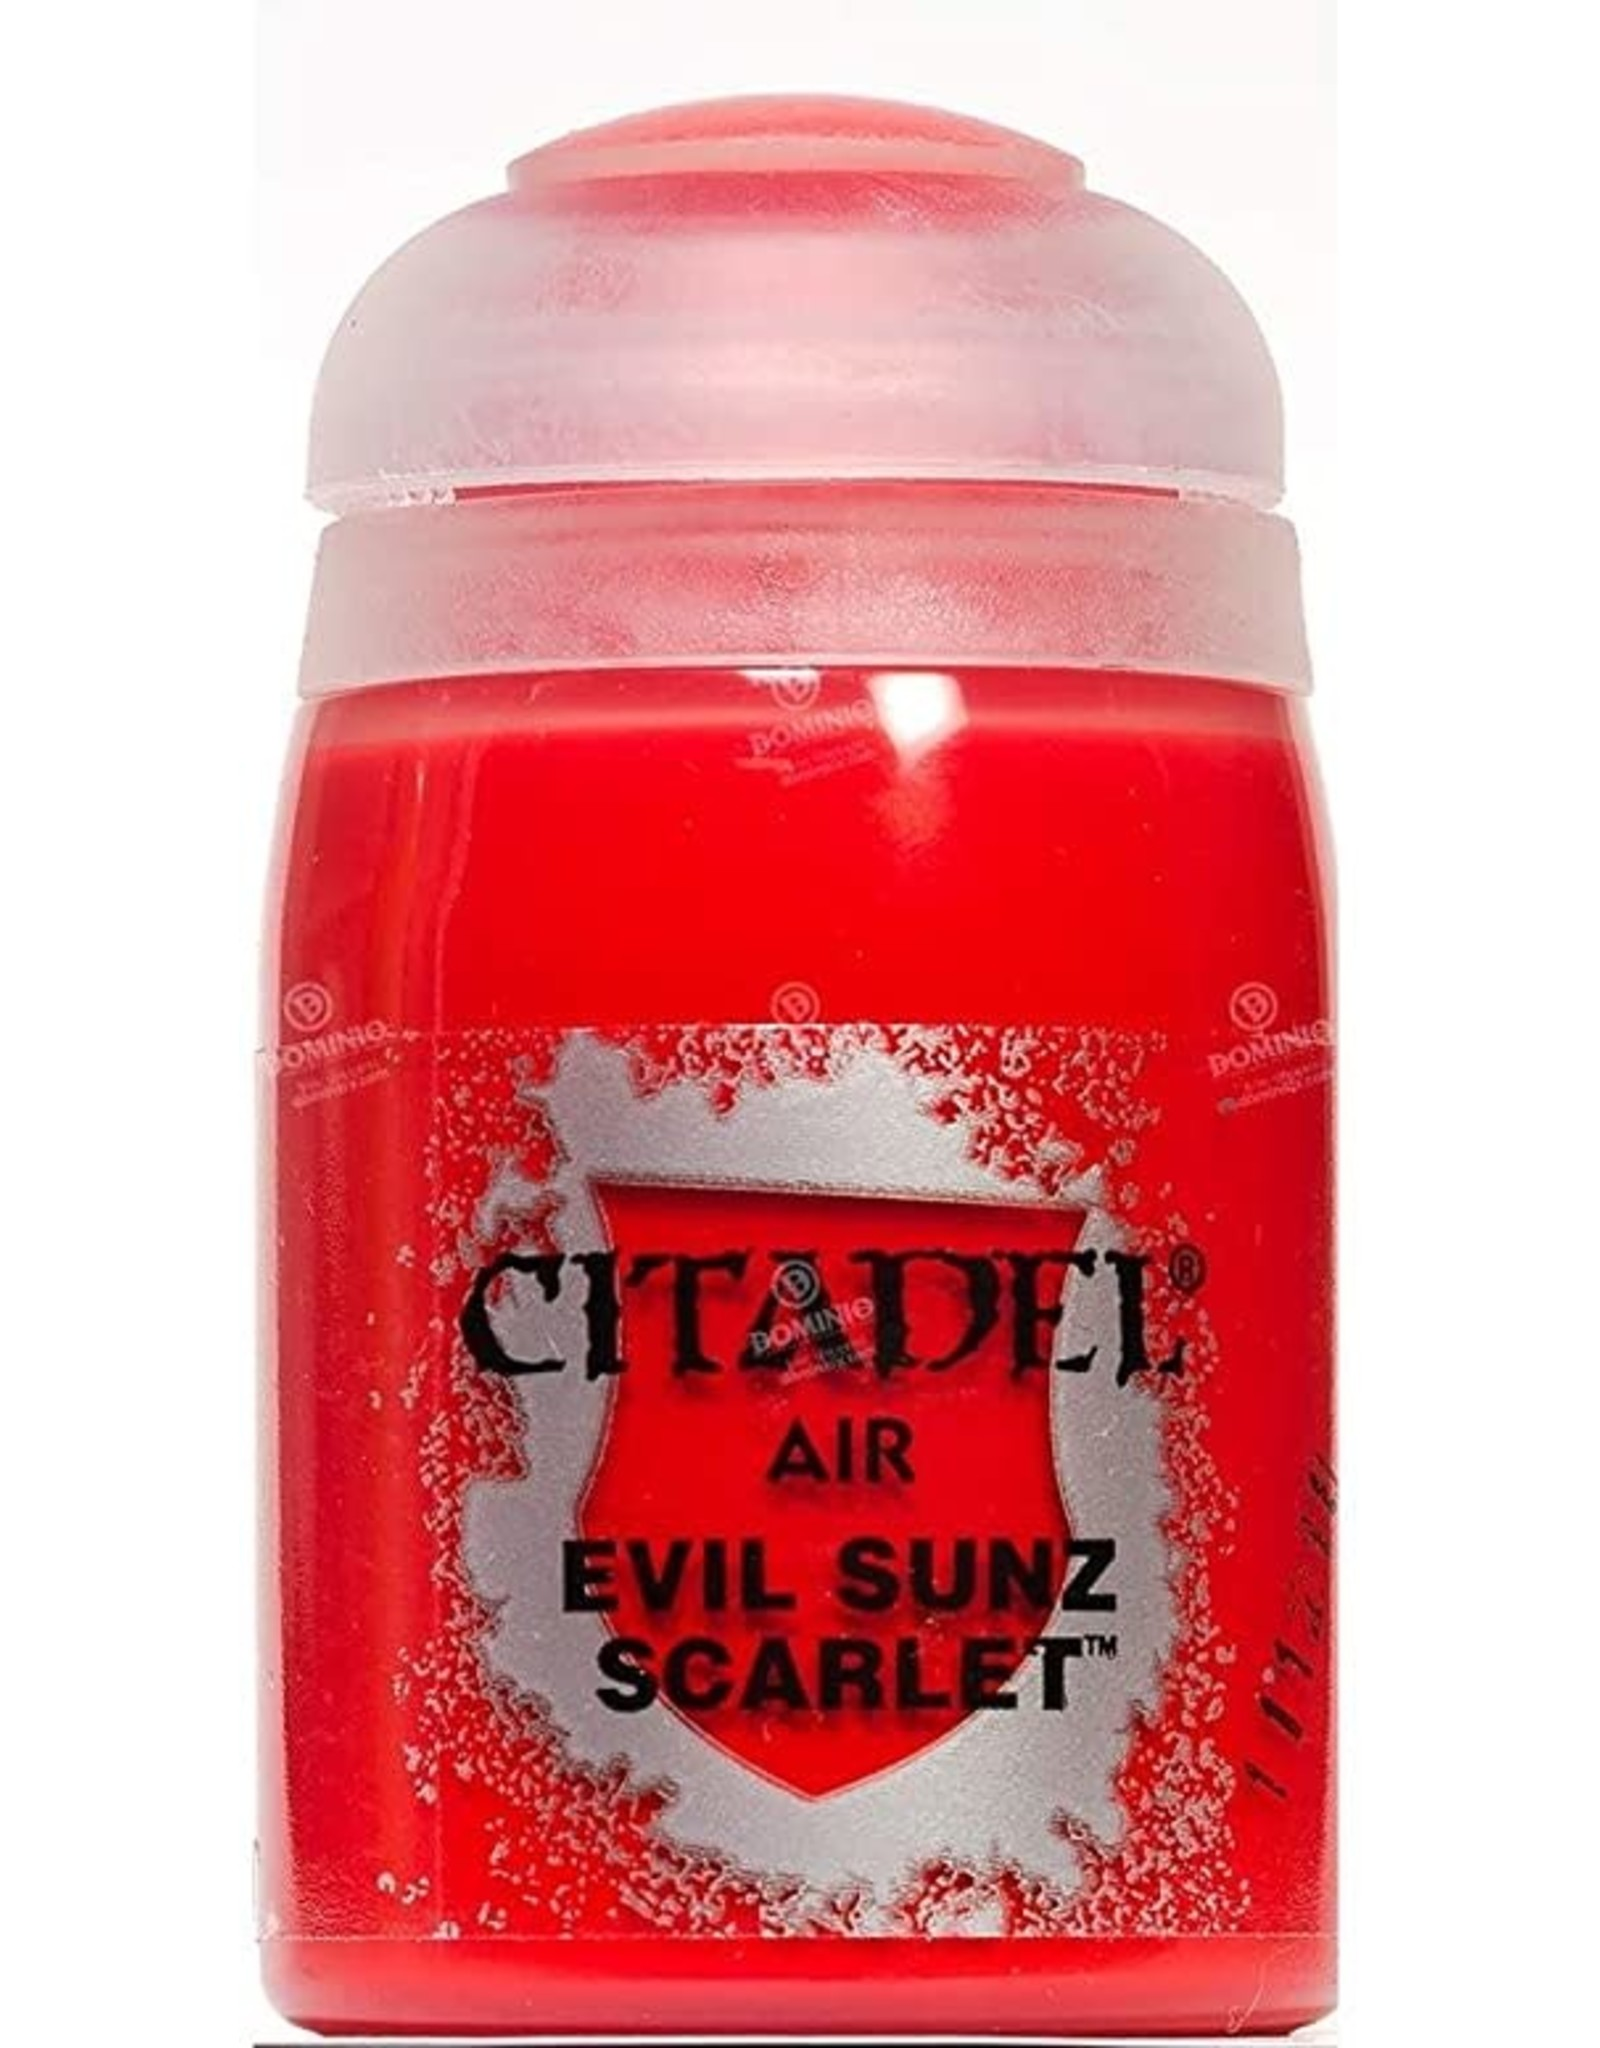 Games Workshop Citadel Paint: Evil Sunz Scarlet Air (24 ml)